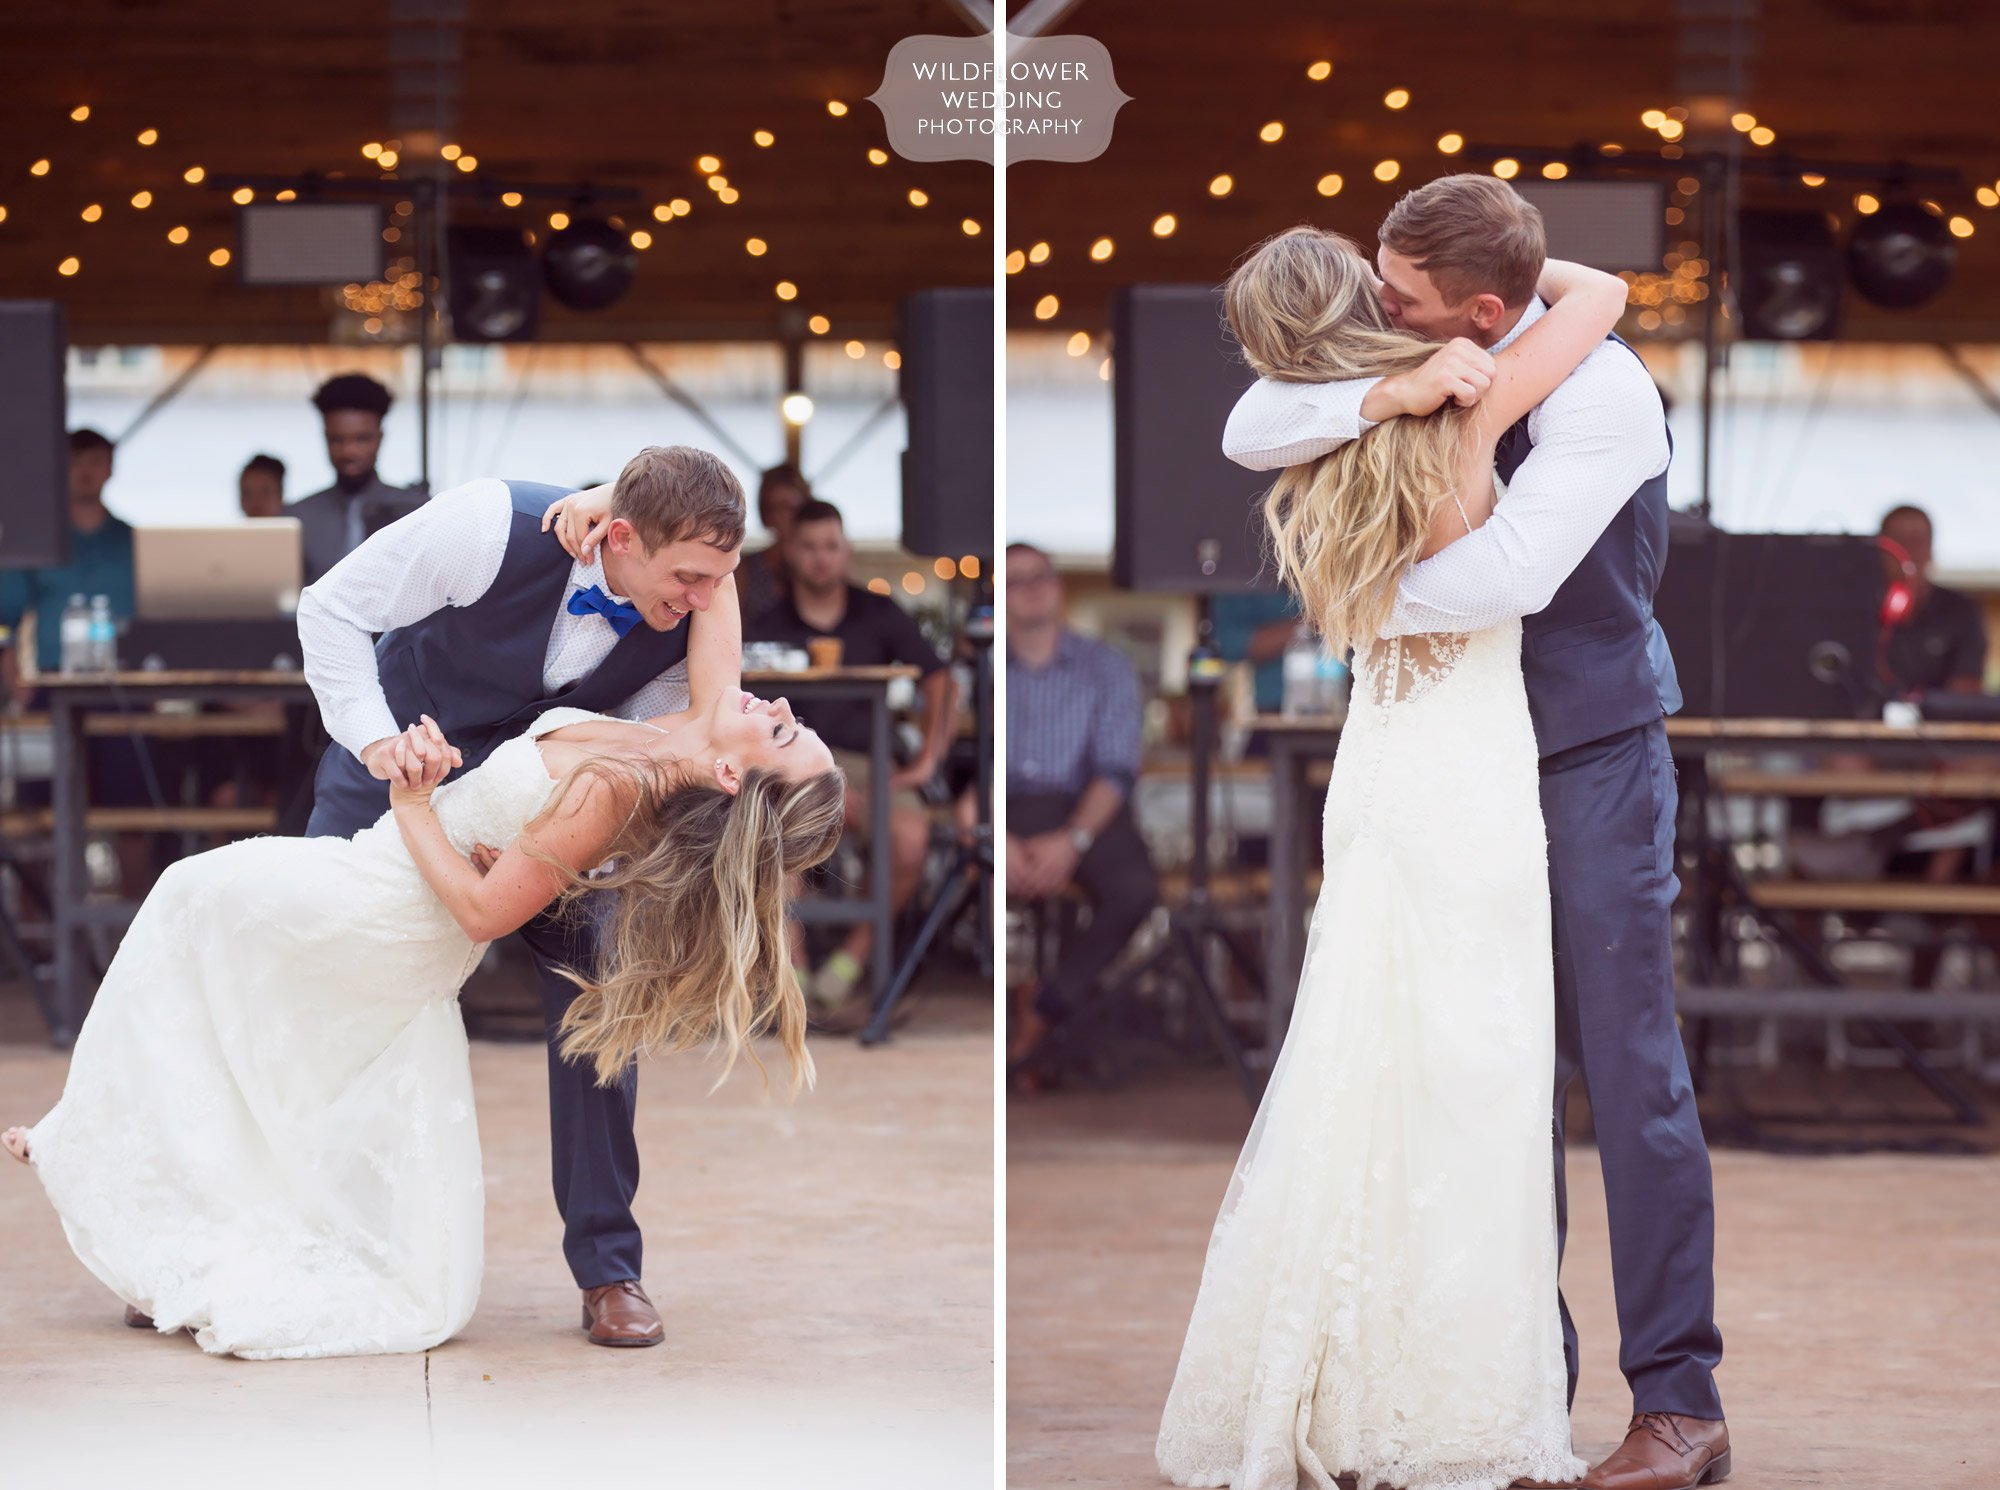 Great documentary photo of the groom dipping the bride outside of a barn on the outdoor patio of Kempker's.